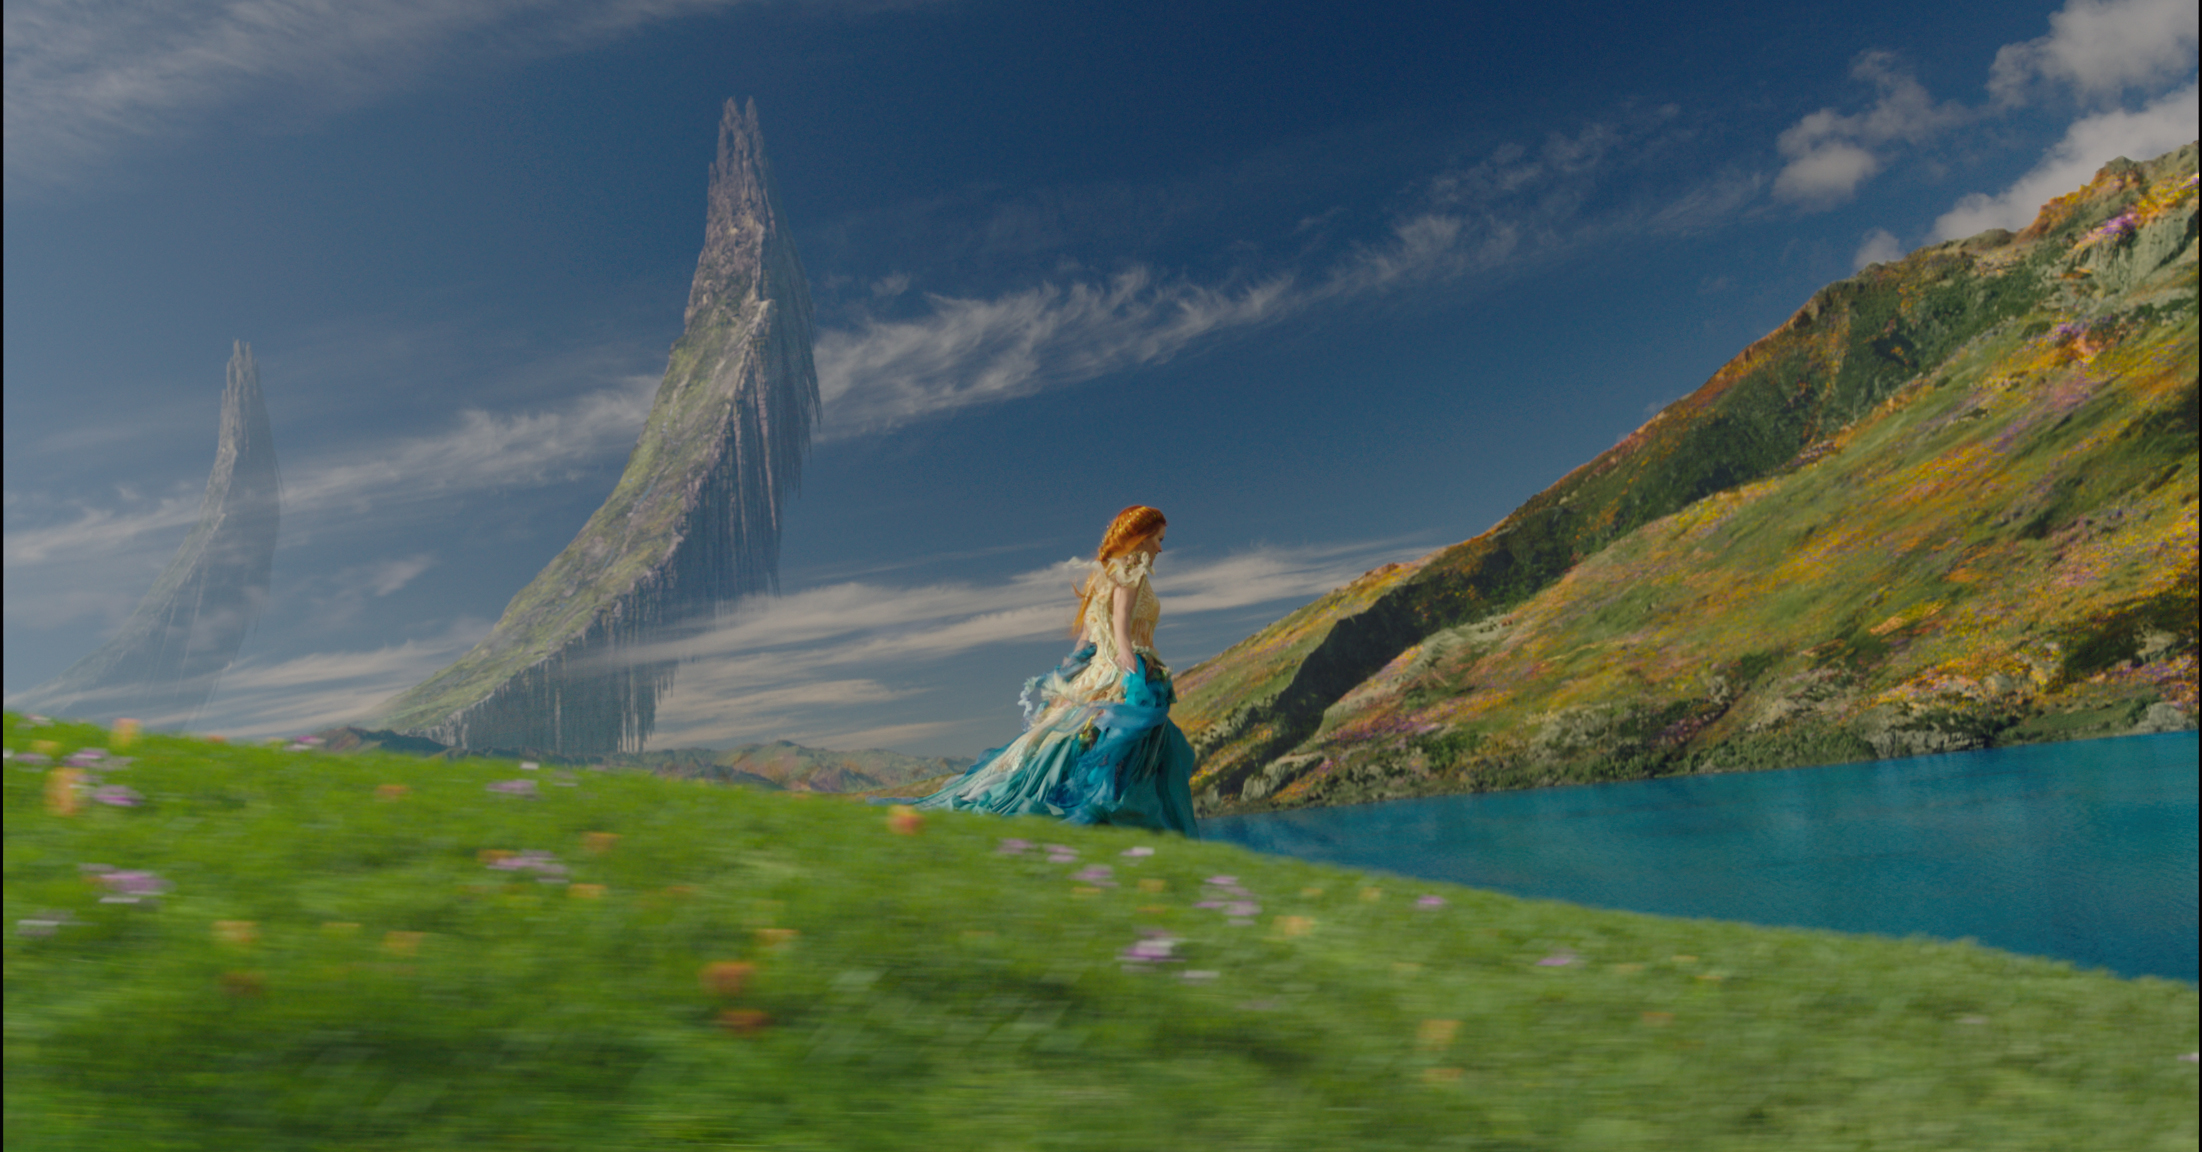 An example of some of the stunning scenery in the movie. Kind of like the Sound of Music turned Sci Fi don't you think?